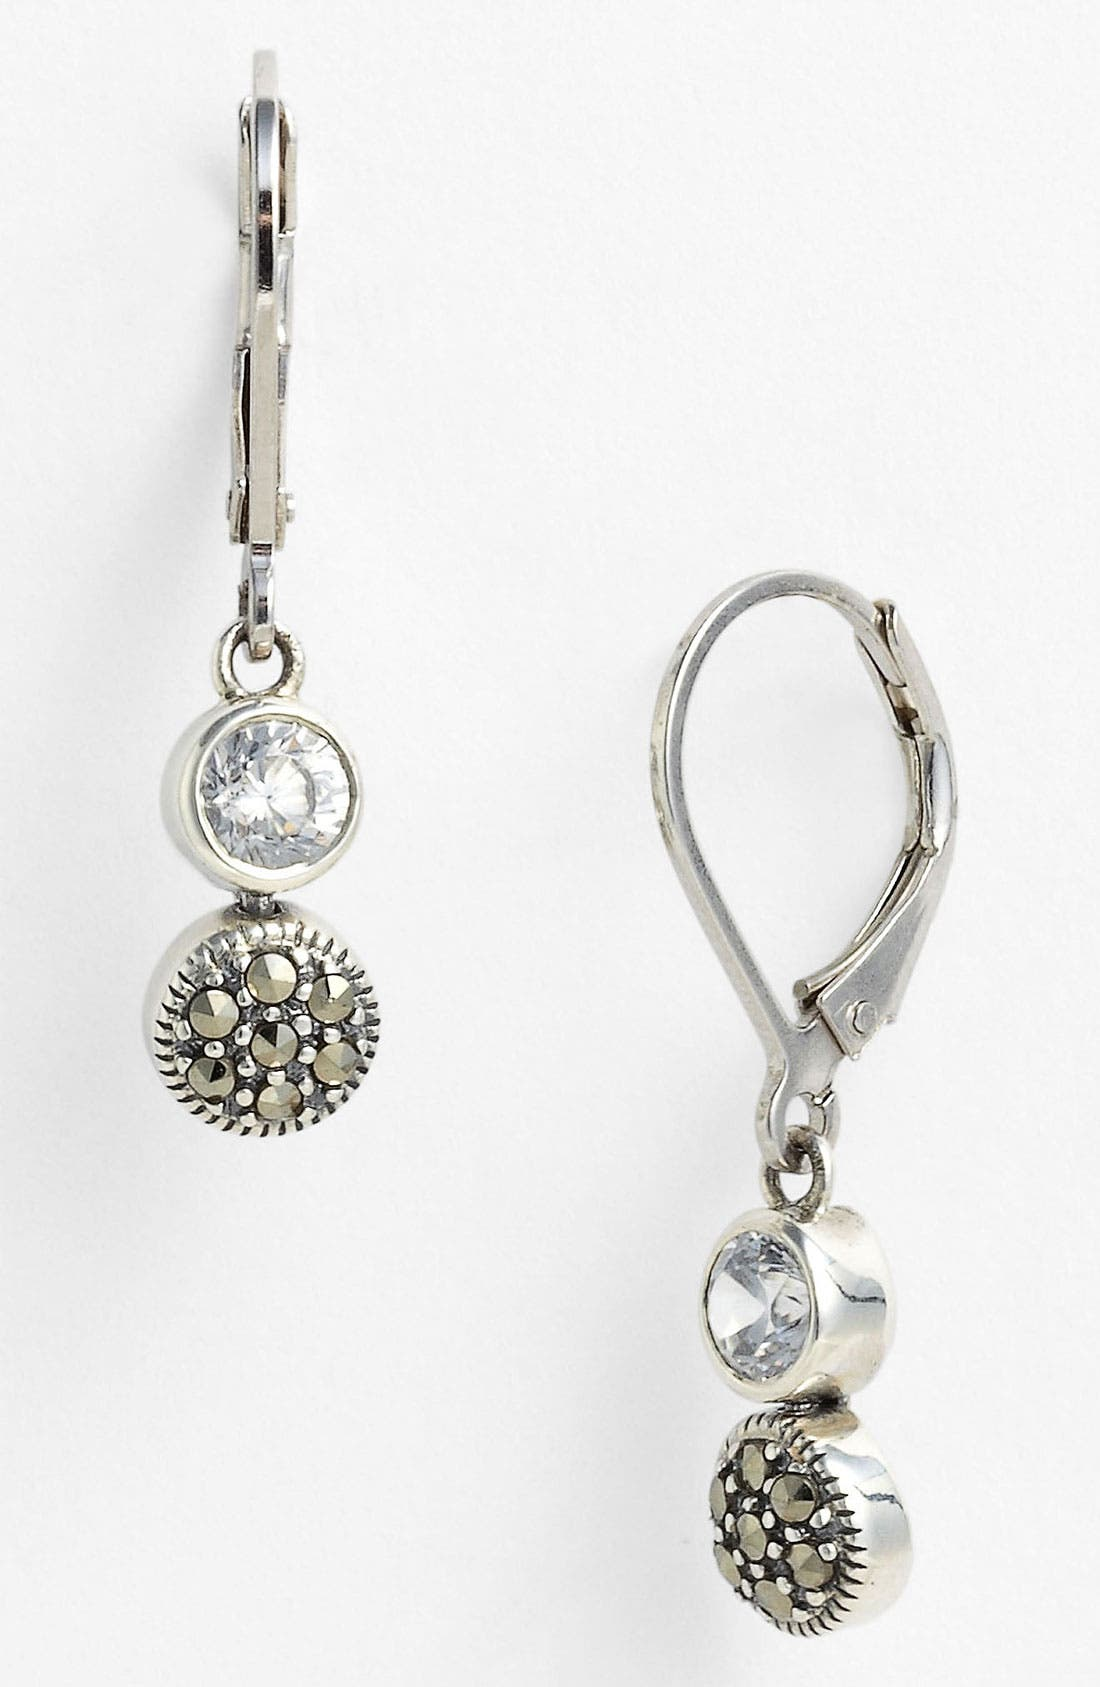 JUDITH JACK Marcasite Earrings